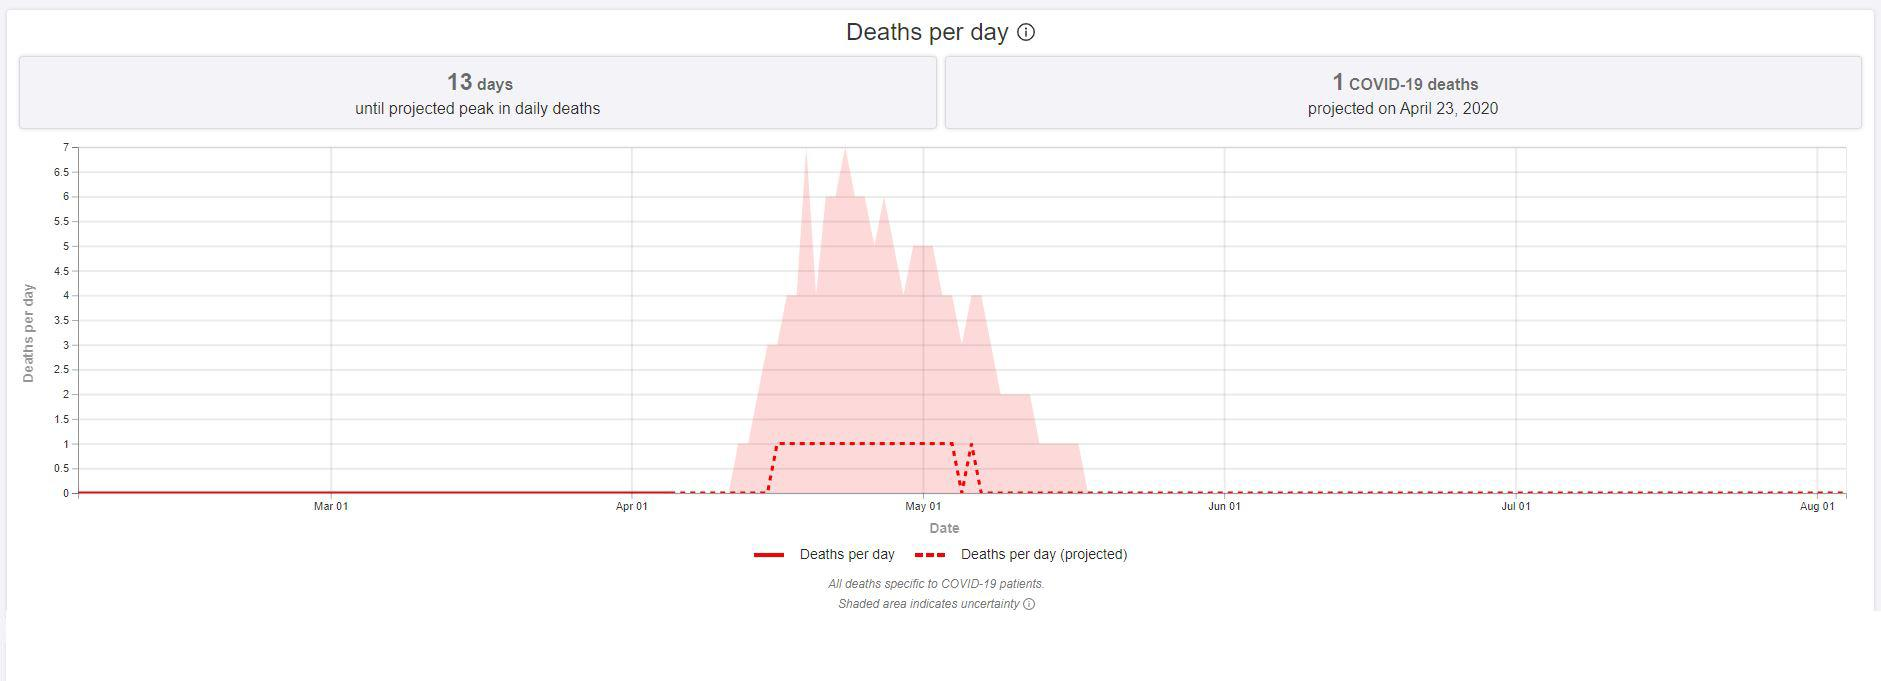 Deaths per day predicted for Malta. The IHME data predicts one daily death during Malta's peak, though there is significant uncertainty baked into those predictions.